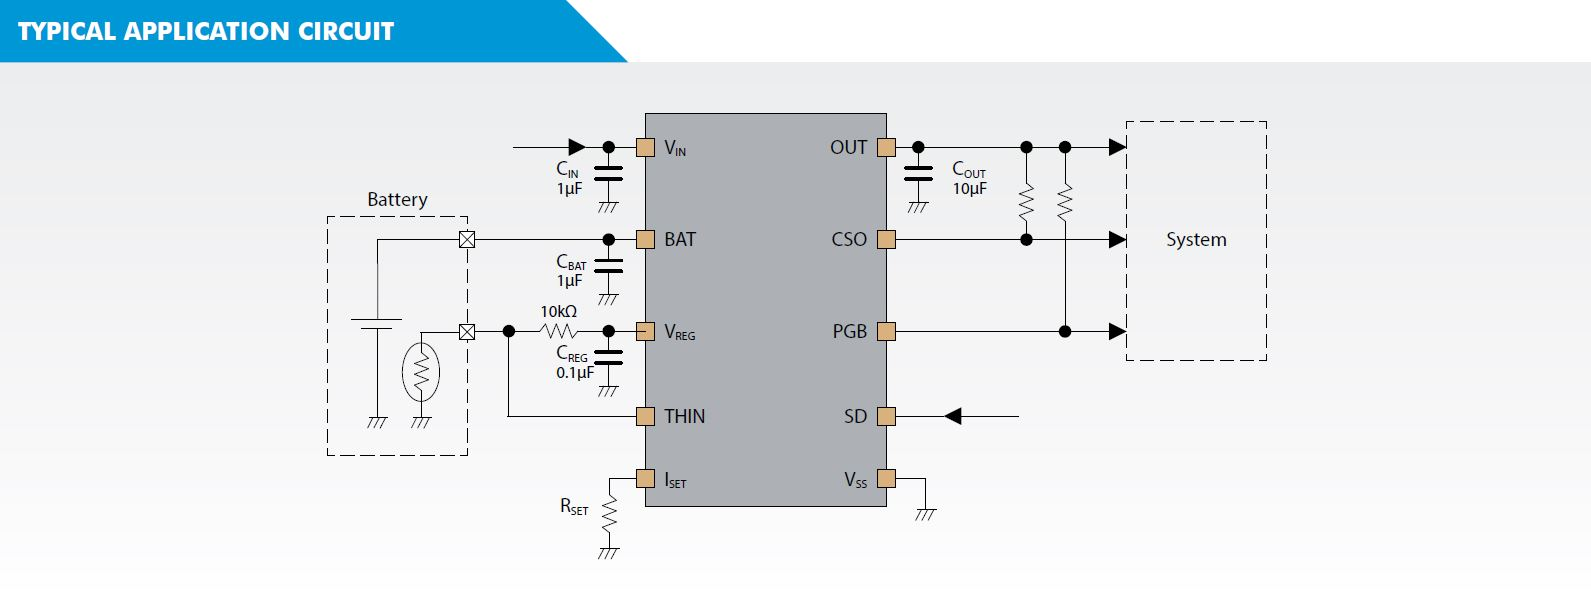 Single Cell Li Ion Polymer Charger Ic Xc6806 Torex Europe Circuit Diagram This Lithium Battery Is Dedicated To The Available In Small Usp 10b Or Lga 10b01 Package And A Charging Can Be Designed With Minimal External Components